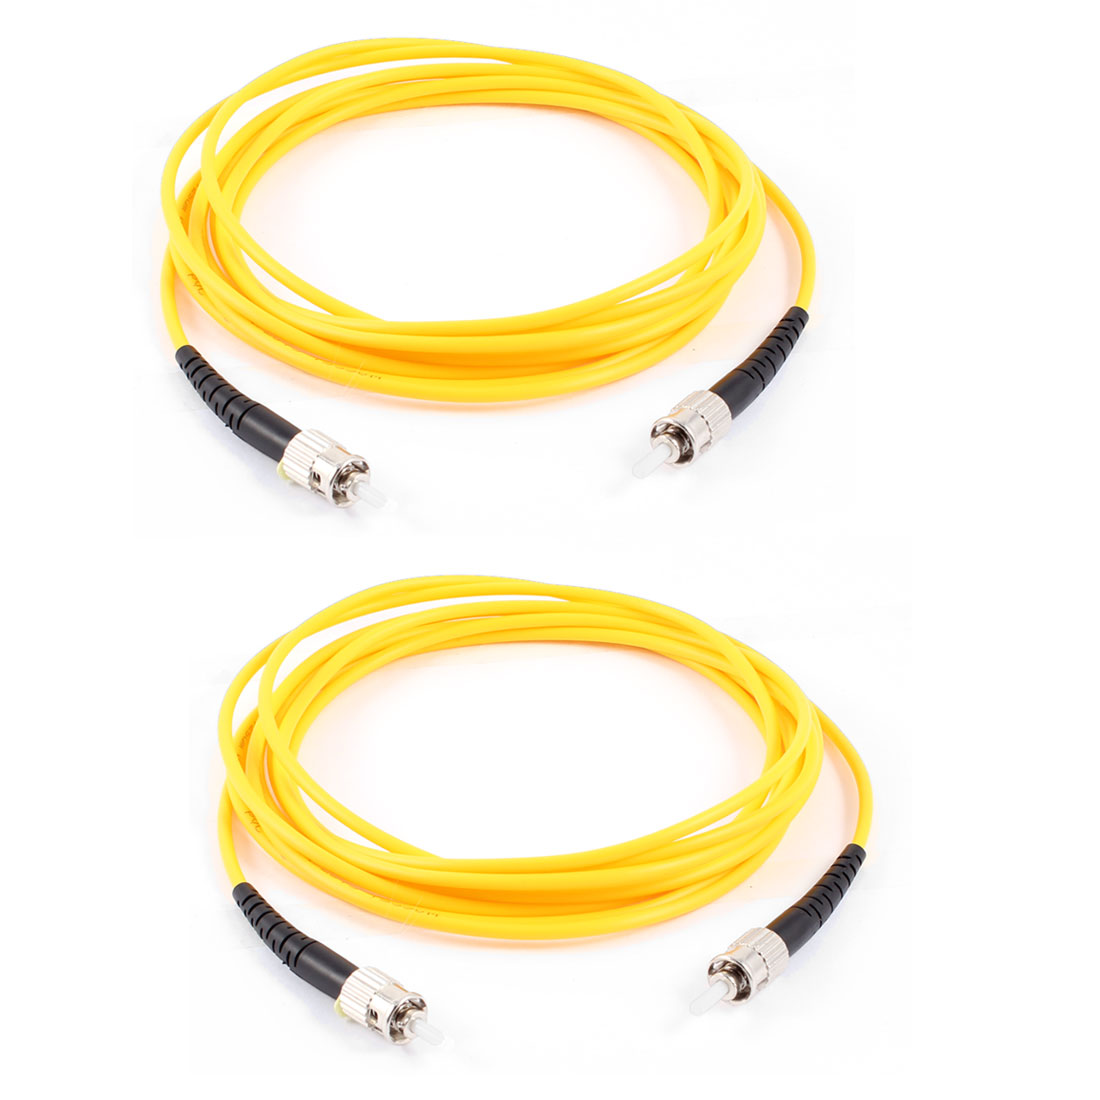 2 Pcs Simplex Single Mode ST to ST Fiber Optic Patch Jump Cable Cord 3 Meters